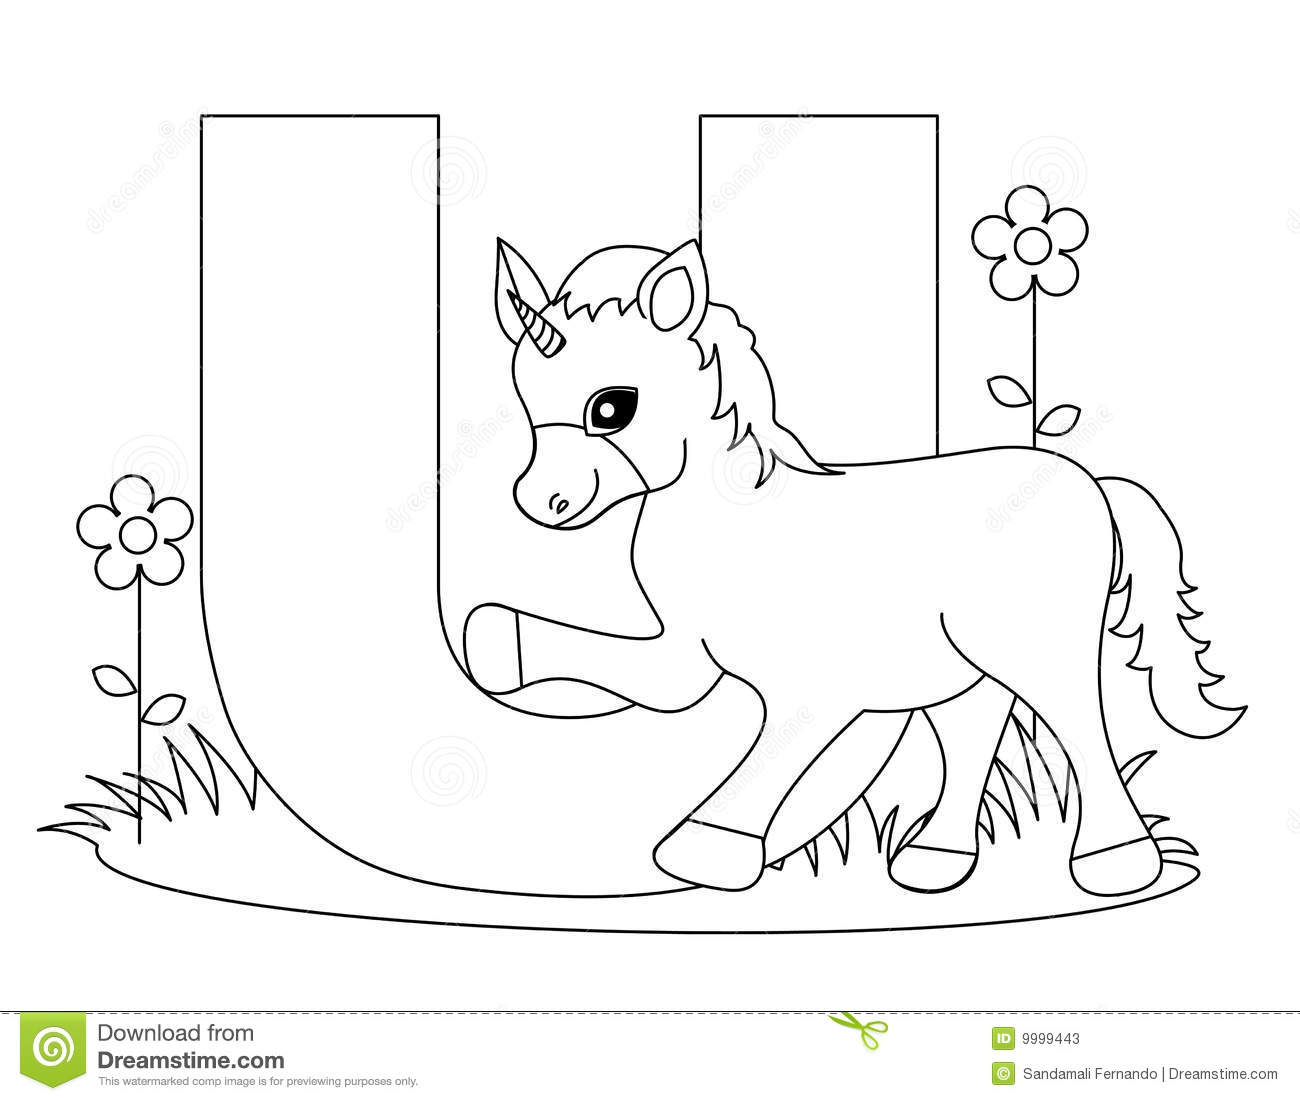 Animal Alphabet U Coloring Page Stock Vector - Illustration of ...